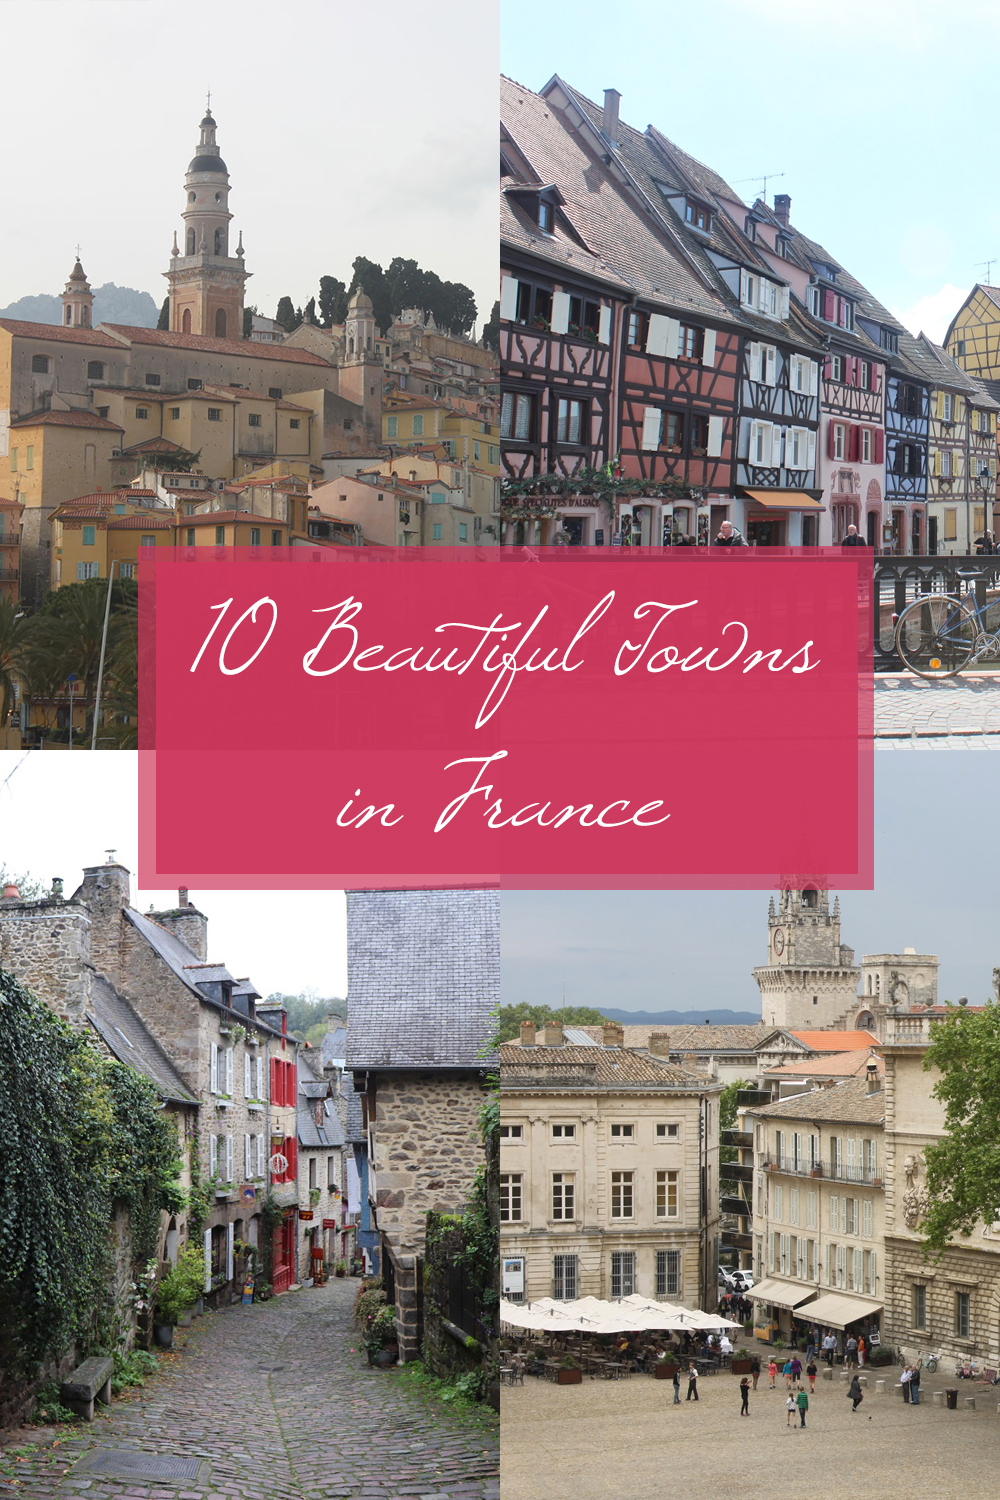 10 Beautiful Towns and Small Cities in France